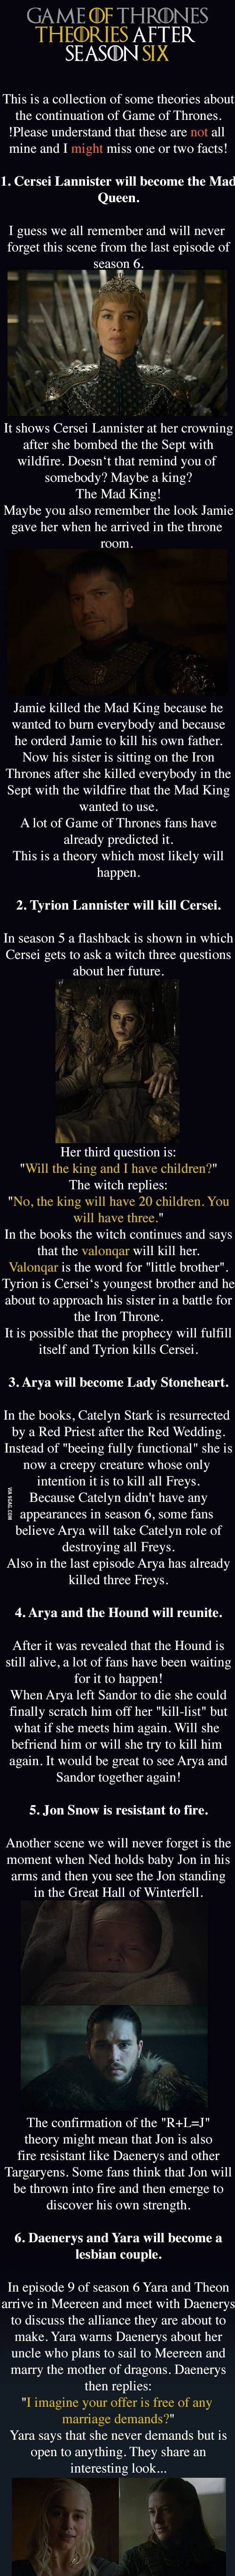 Collection of Popular Game of Thrones Fan Theories (After Season 6)